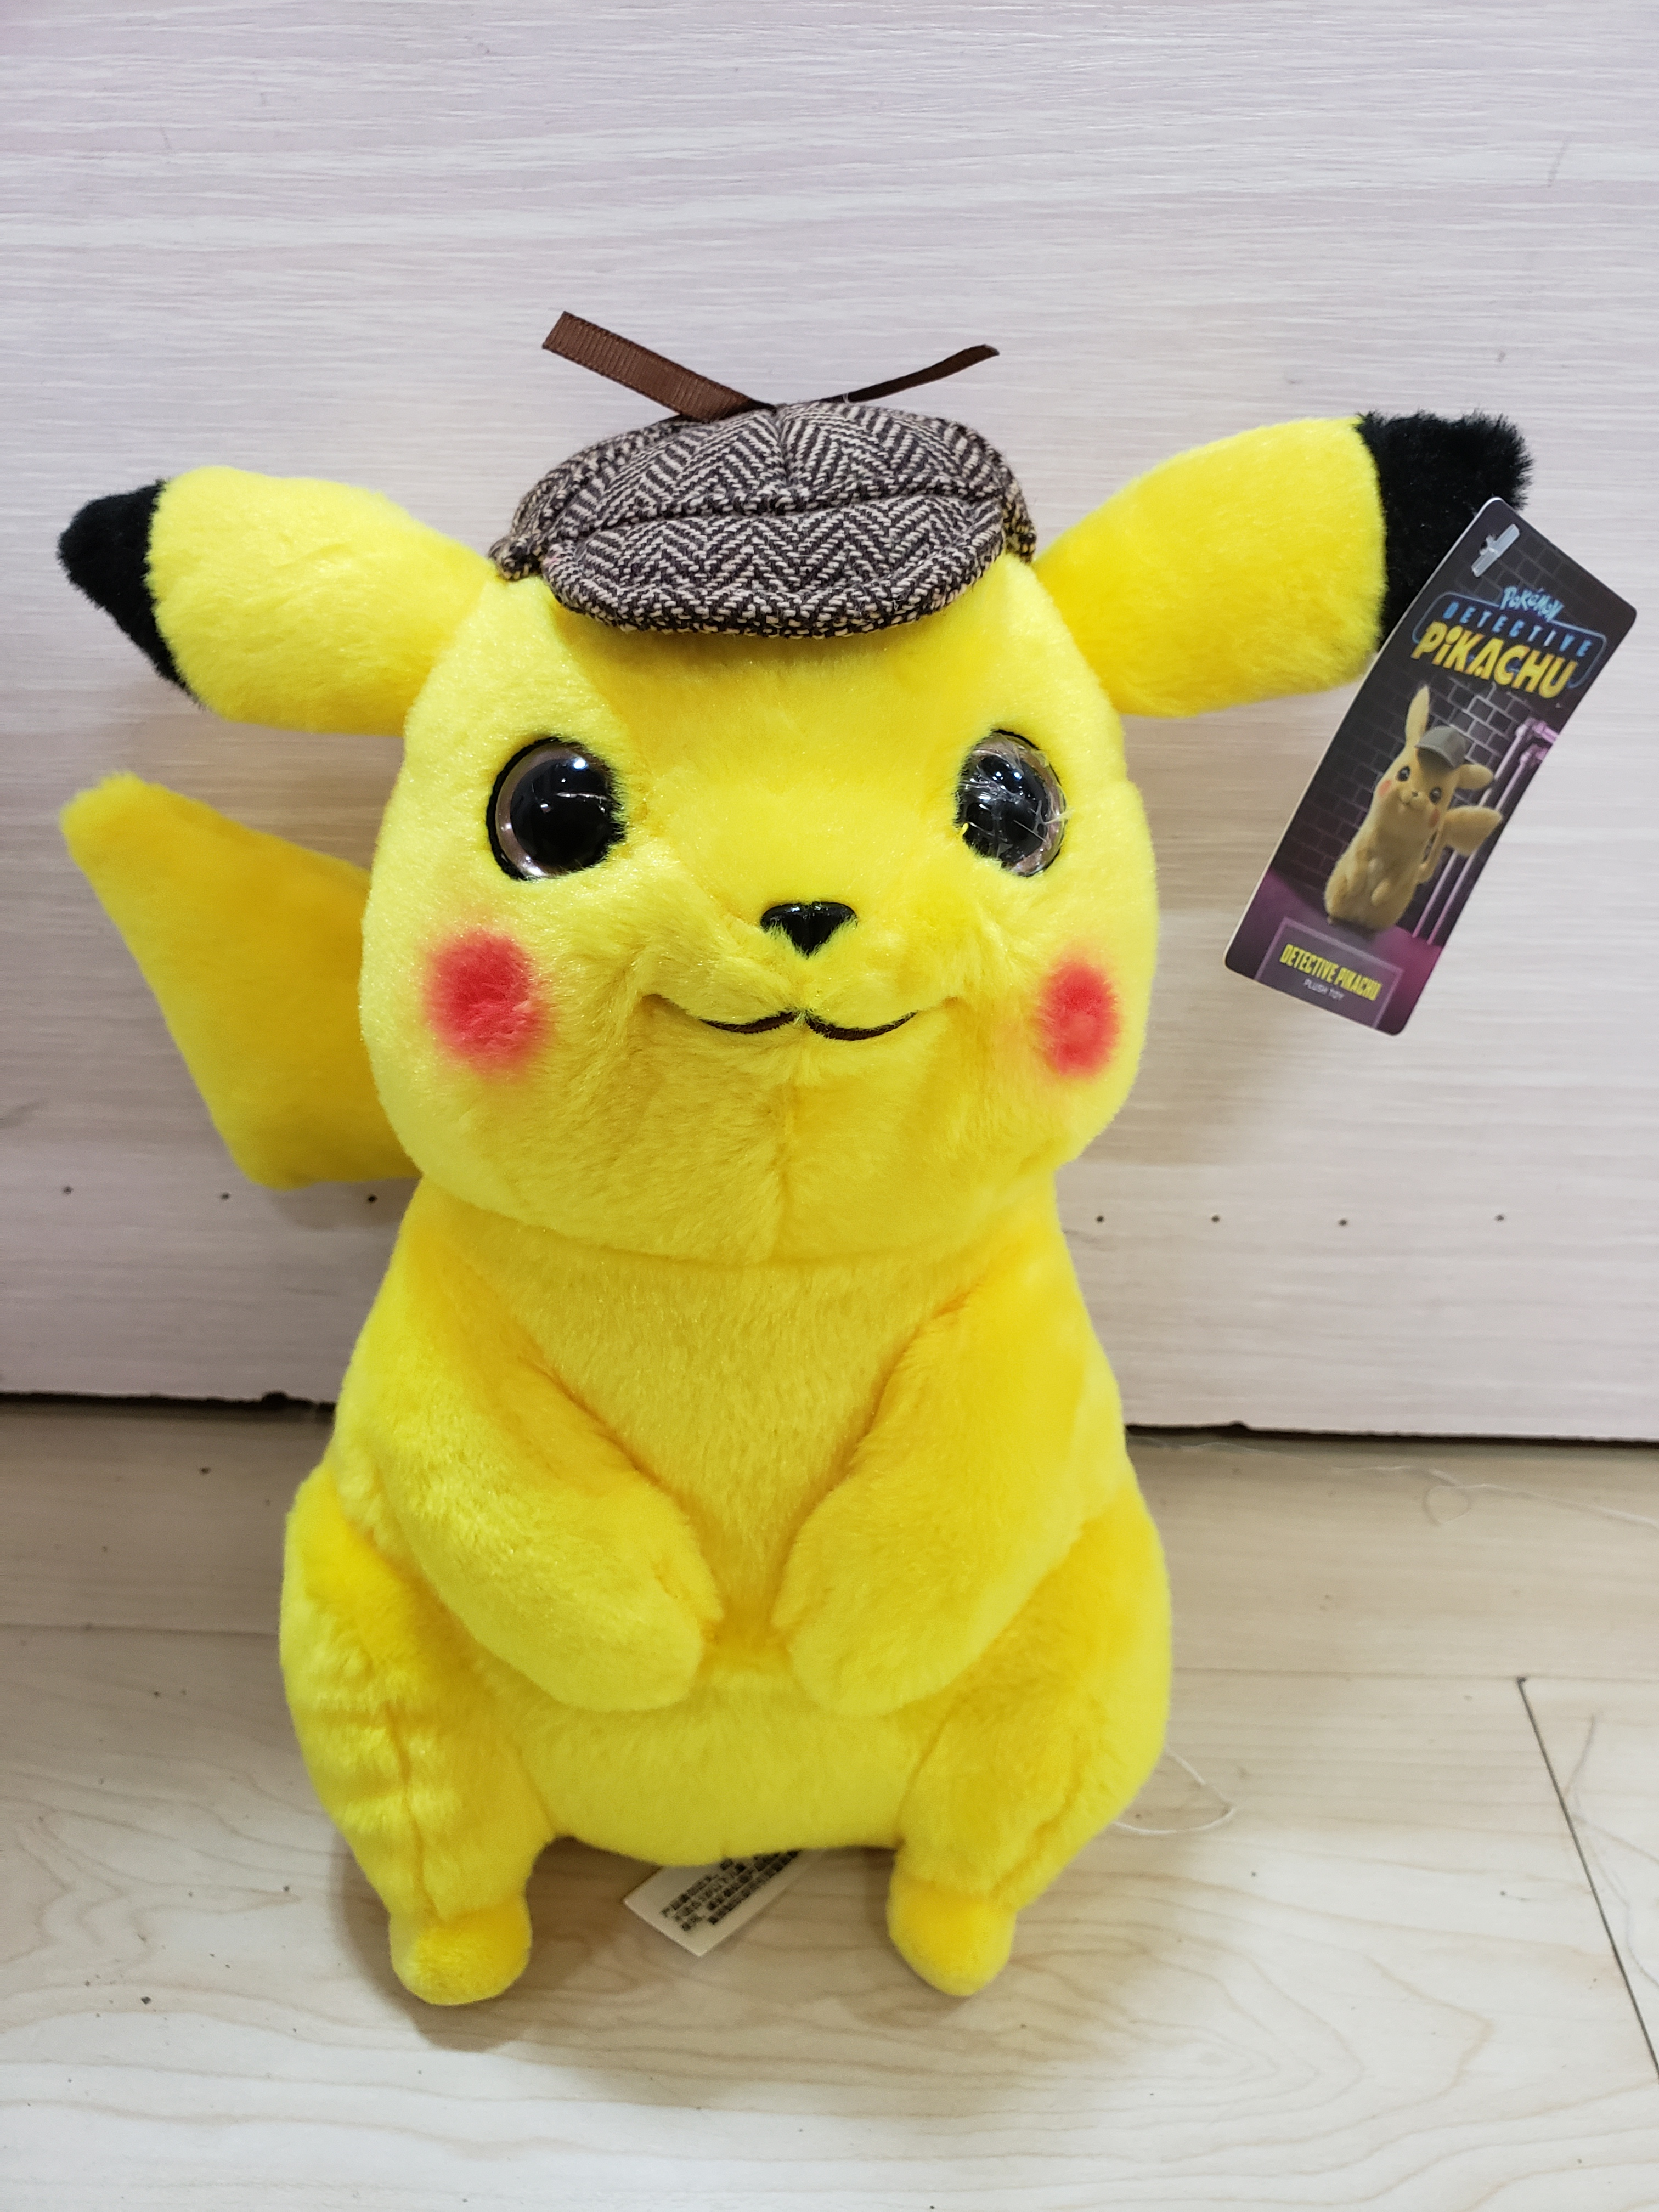 Image 2 - 2019 new 25/30/35cm Detective Pikachu Plush Toy High Quality Cute Anime Plush Toys Childrens Gift Toy Kids Cartoon Peluche-in Stuffed & Plush Animals from Toys & Hobbies